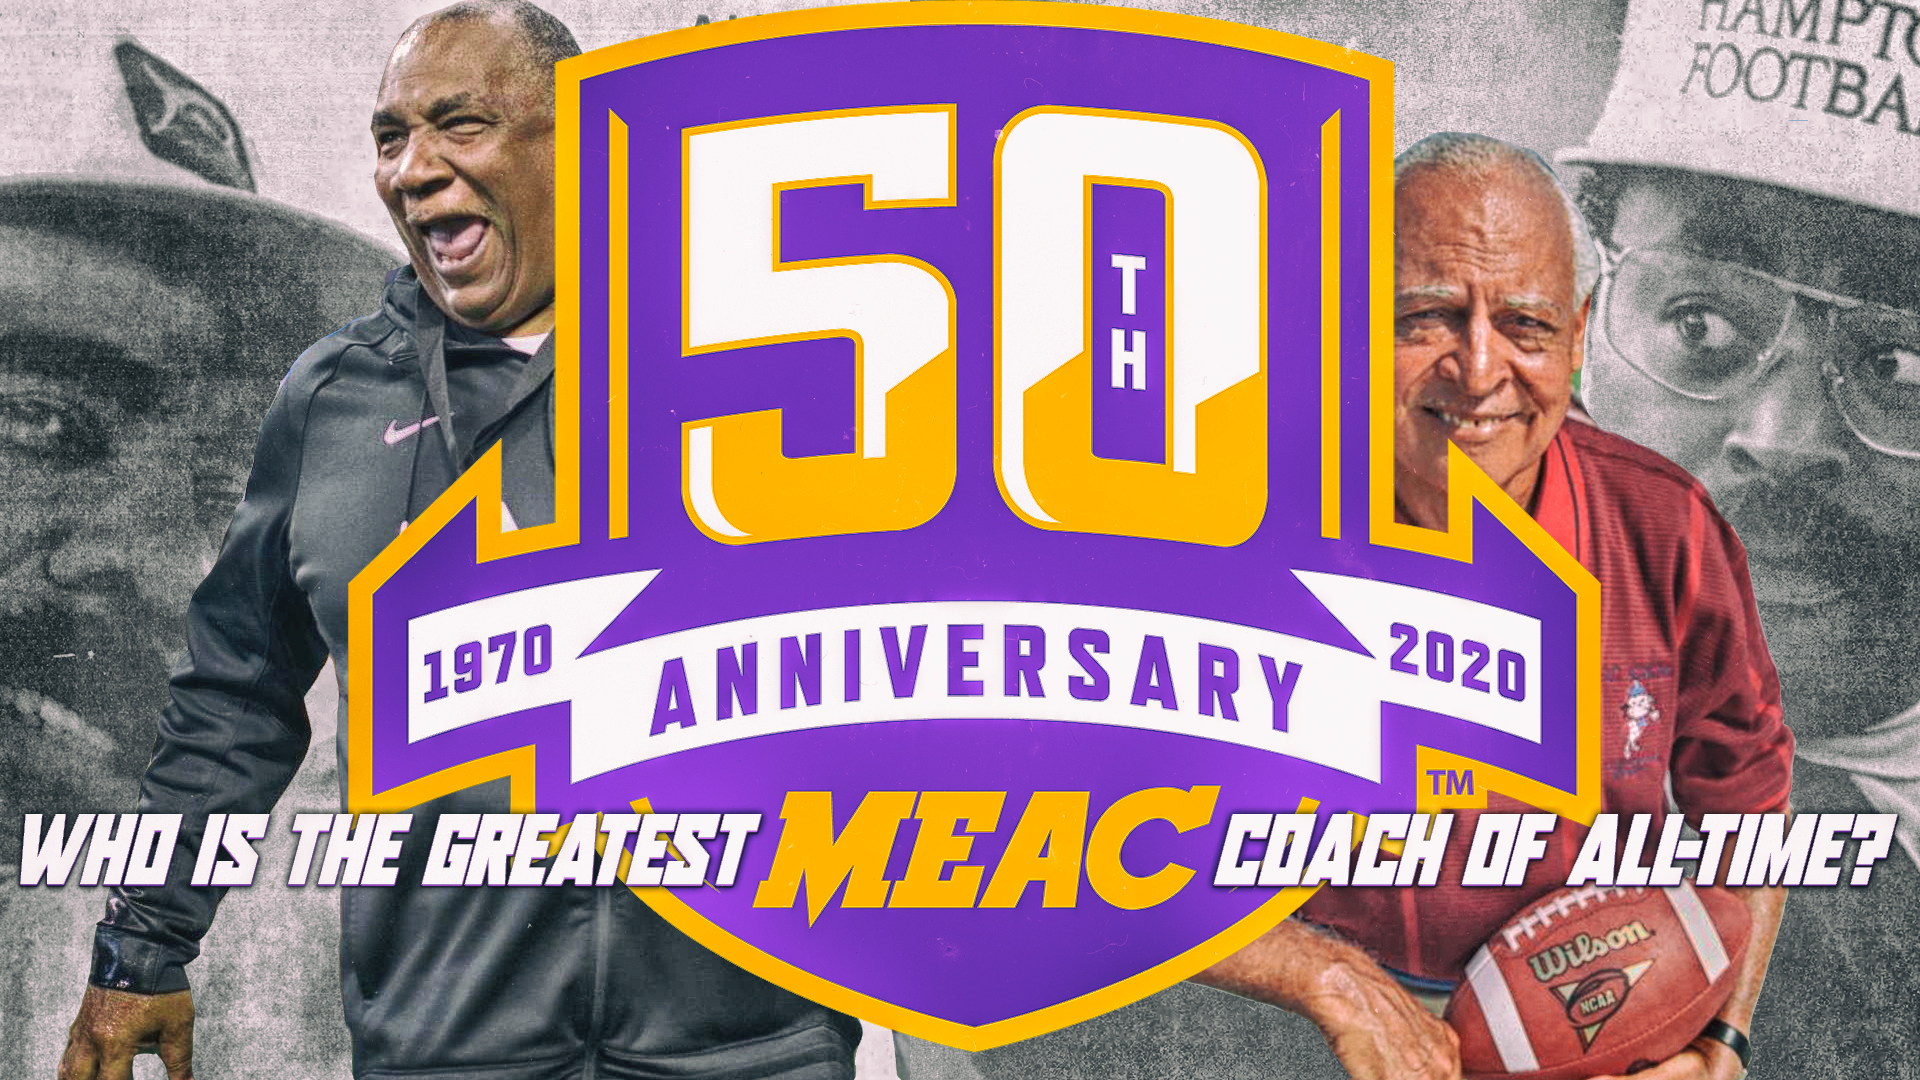 Greatest MEAC Football Coach of All-Time